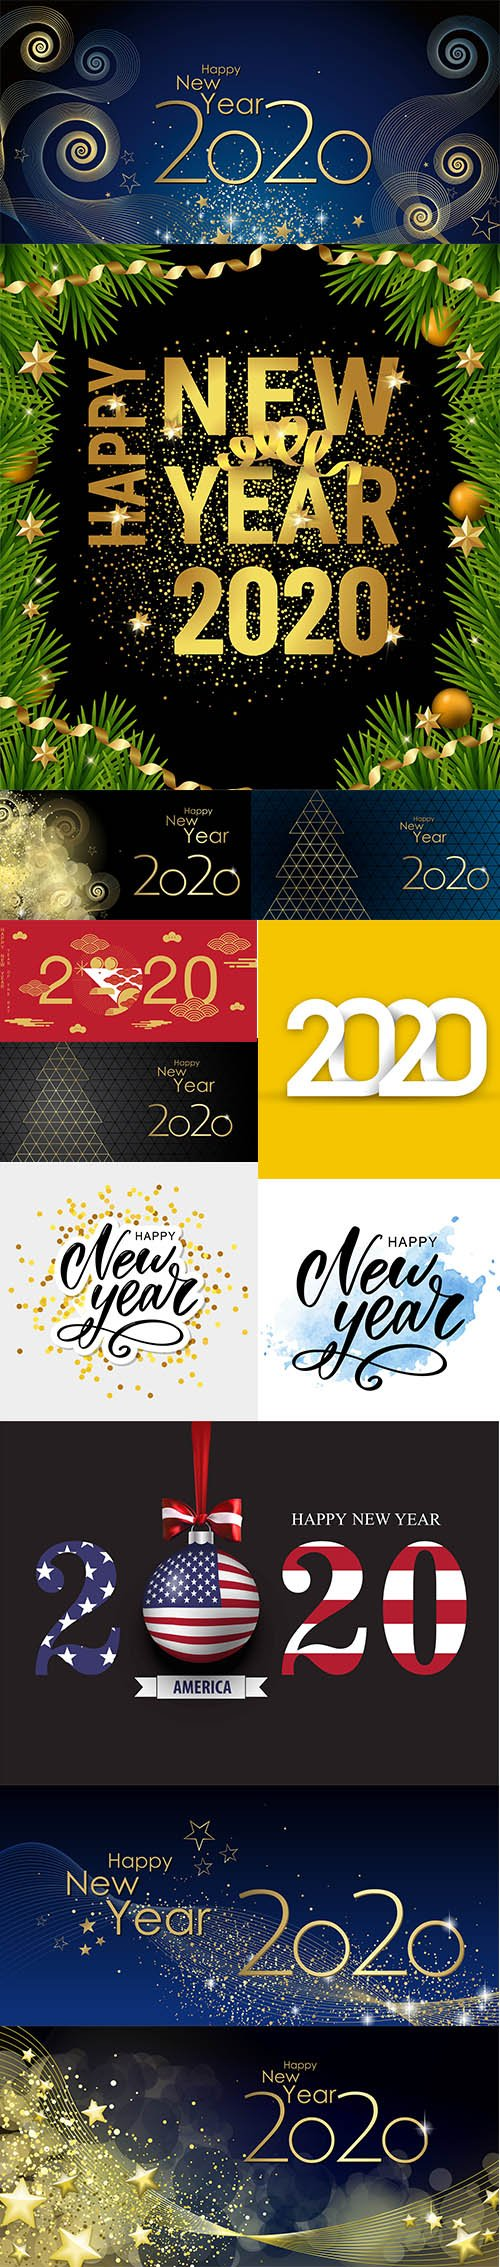 Merry Christmas and Happy New Year 2020 Illustrations Vector Set 4